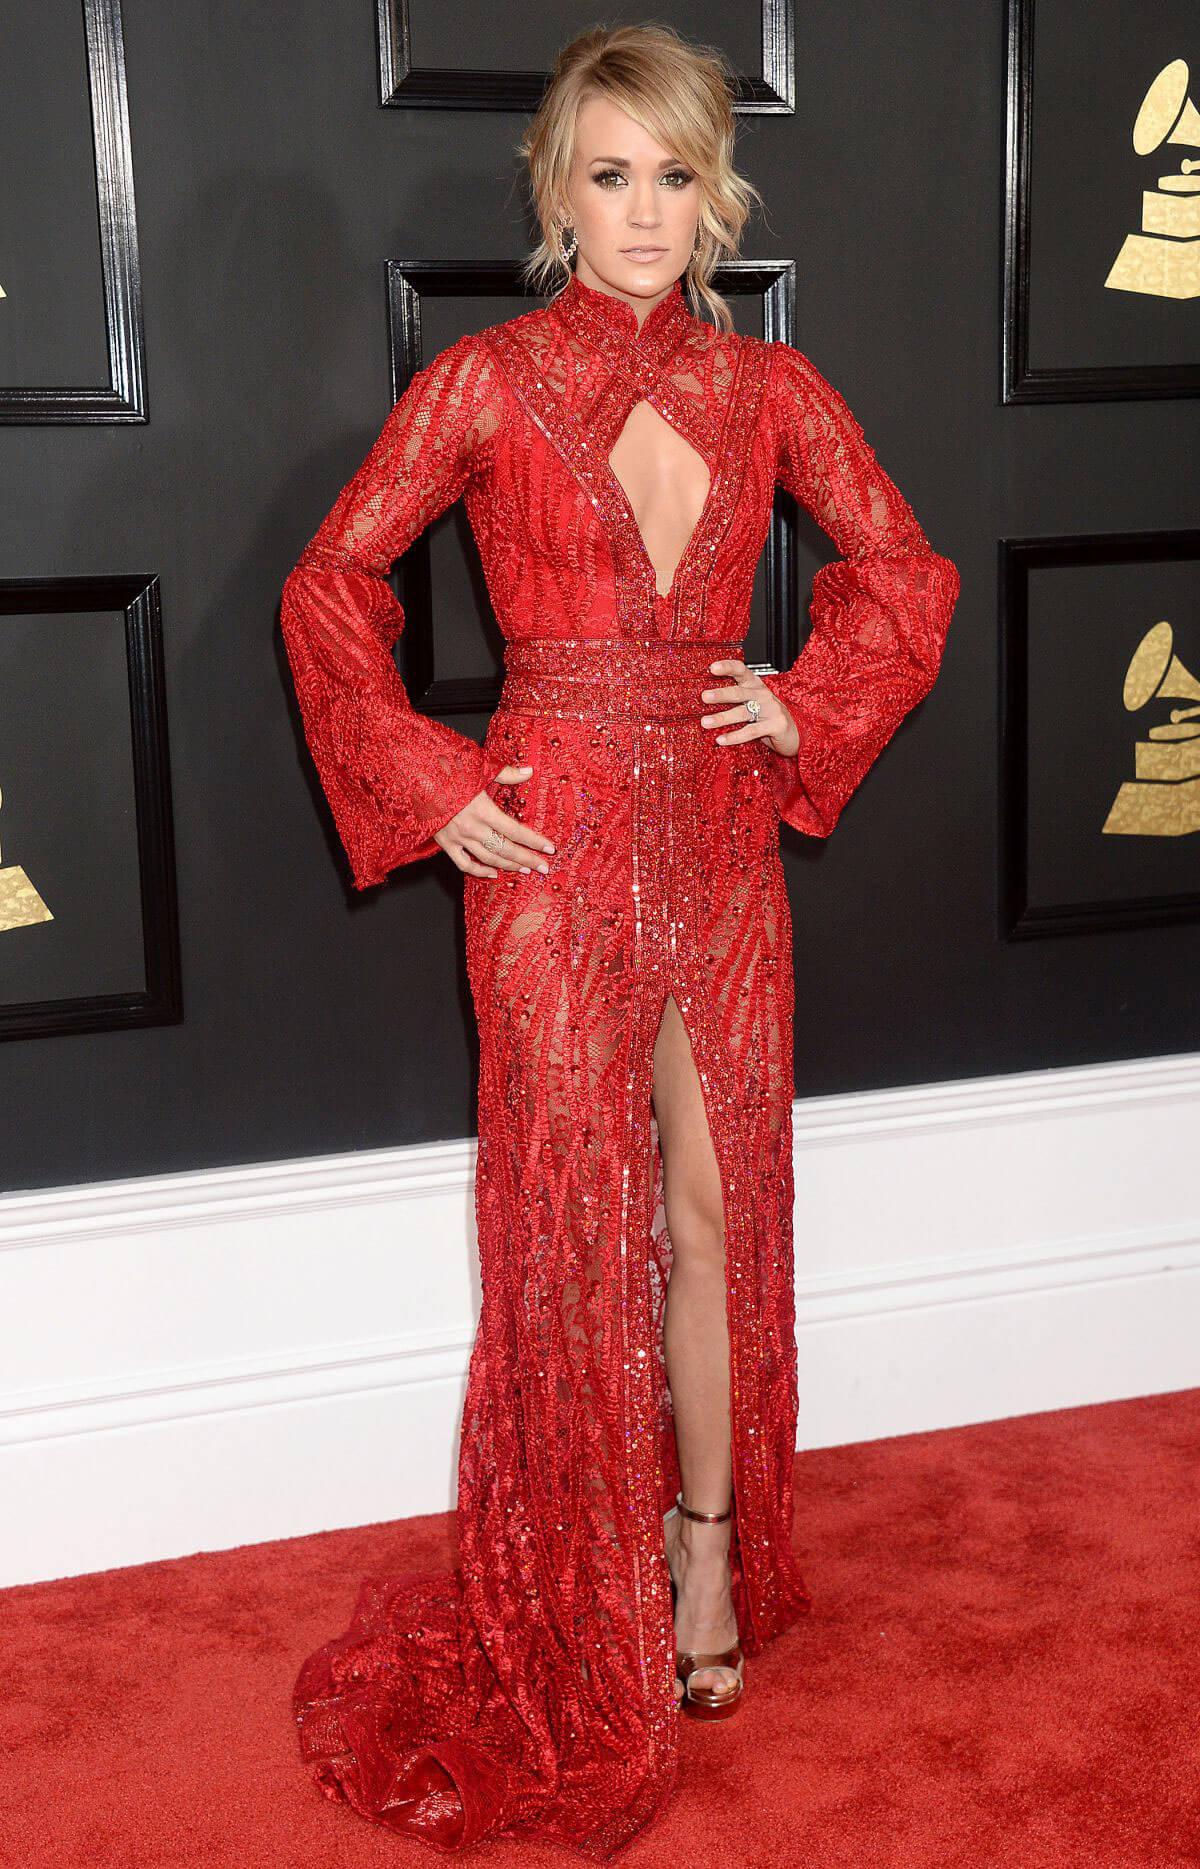 Carrie Underwood at 59th Annual Grammy Awards in Los Angeles